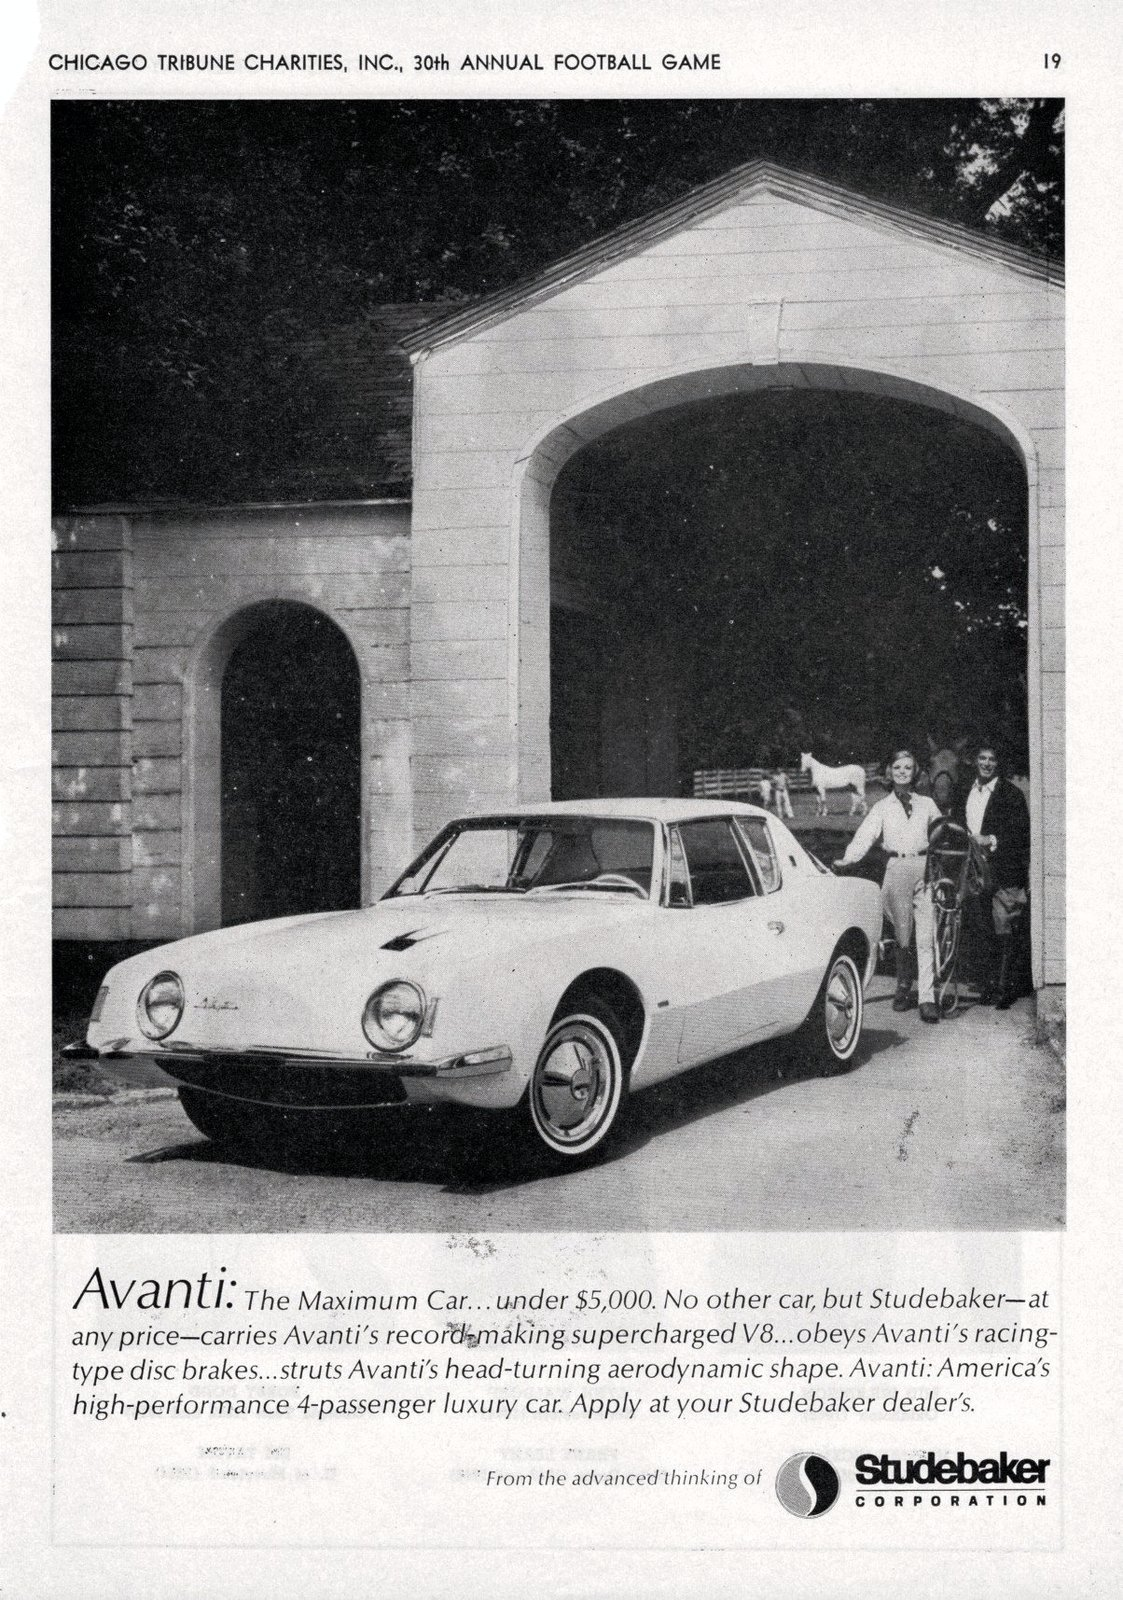 Studebaker Avanti (1963)  Italian for forward, the Avanti was created by Loewy and a team of designers during a 40-day crash course at the behest of Studebaker President Sherwood Egbert. Sporting a sleek look during a period of automotive overindulgence, the Avanti also boasted numerous safety features ahead of its time.  Photo Credit: Alden Jewell, Creative Commons  Photo 3 of 9 in Design Icon: 8 Works by Raymond Loewy